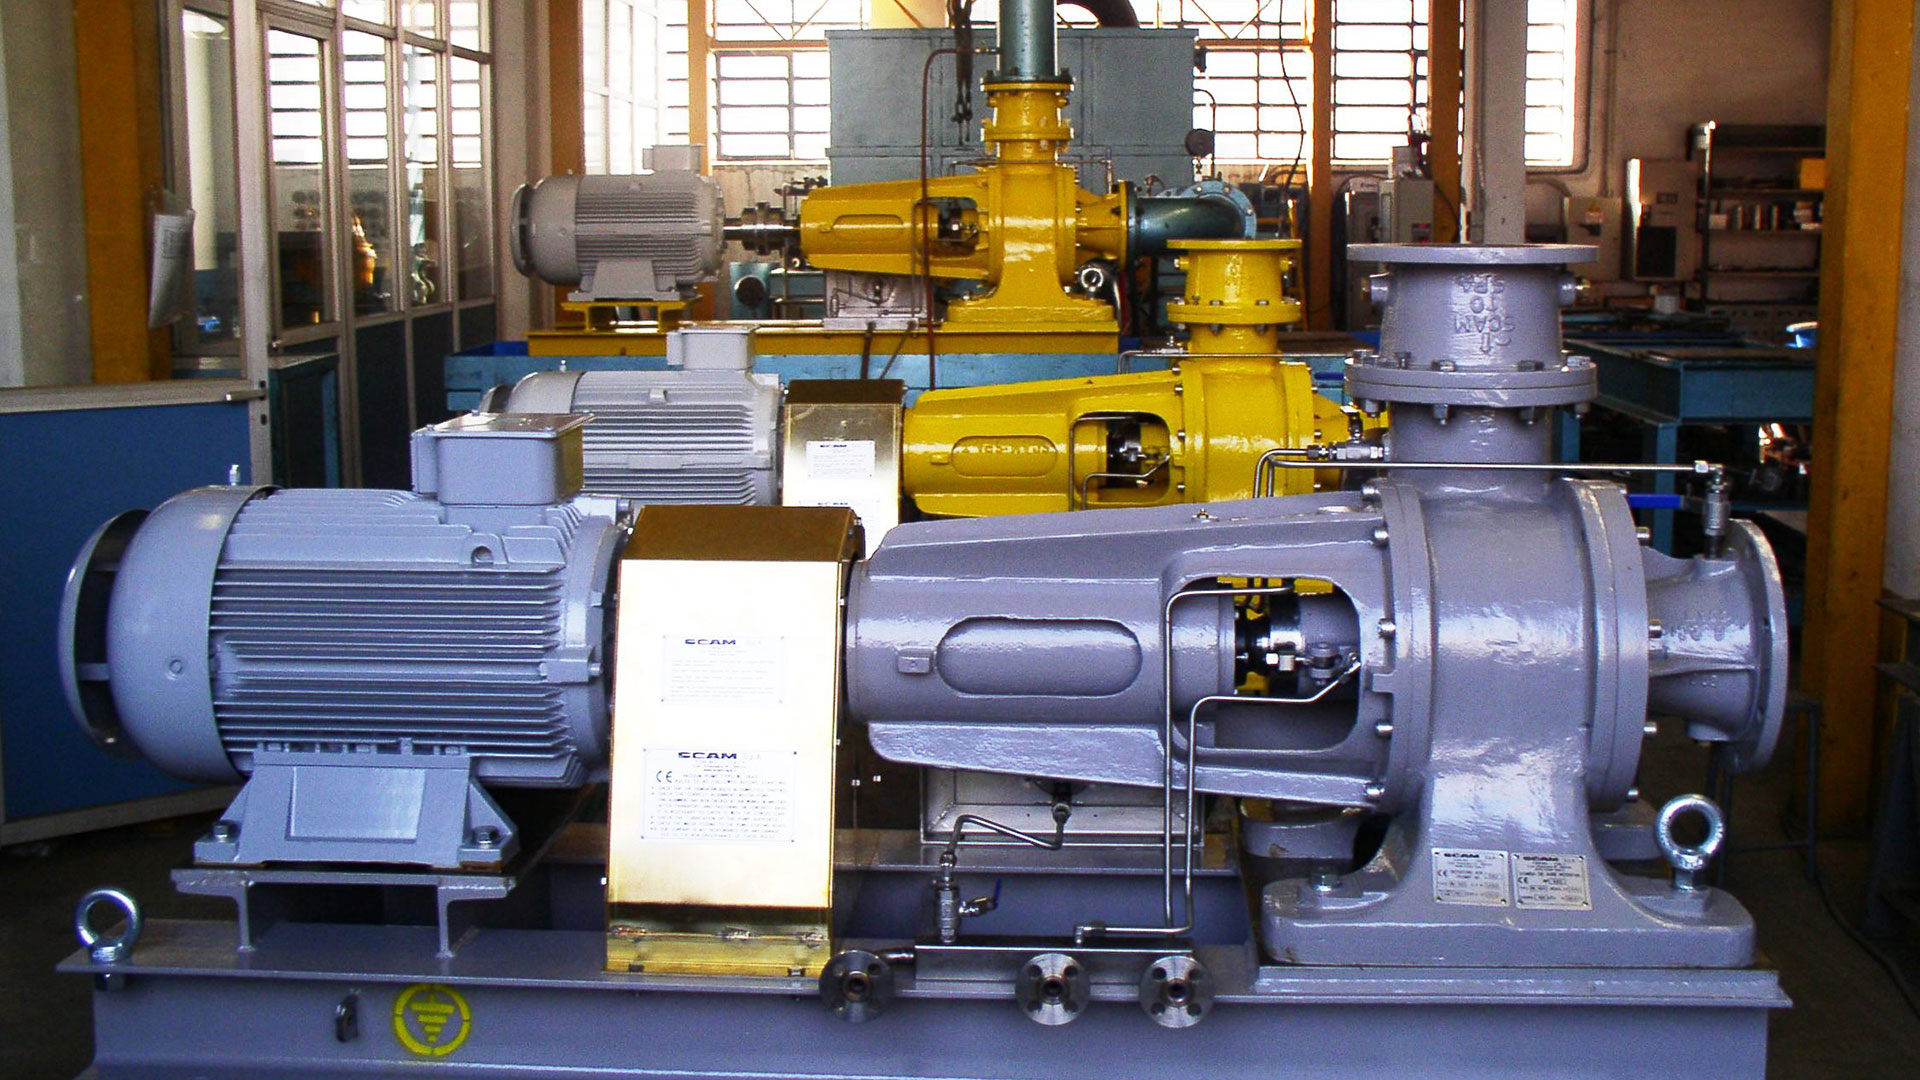 Vacuum Pumps 11 by SCAM Technology